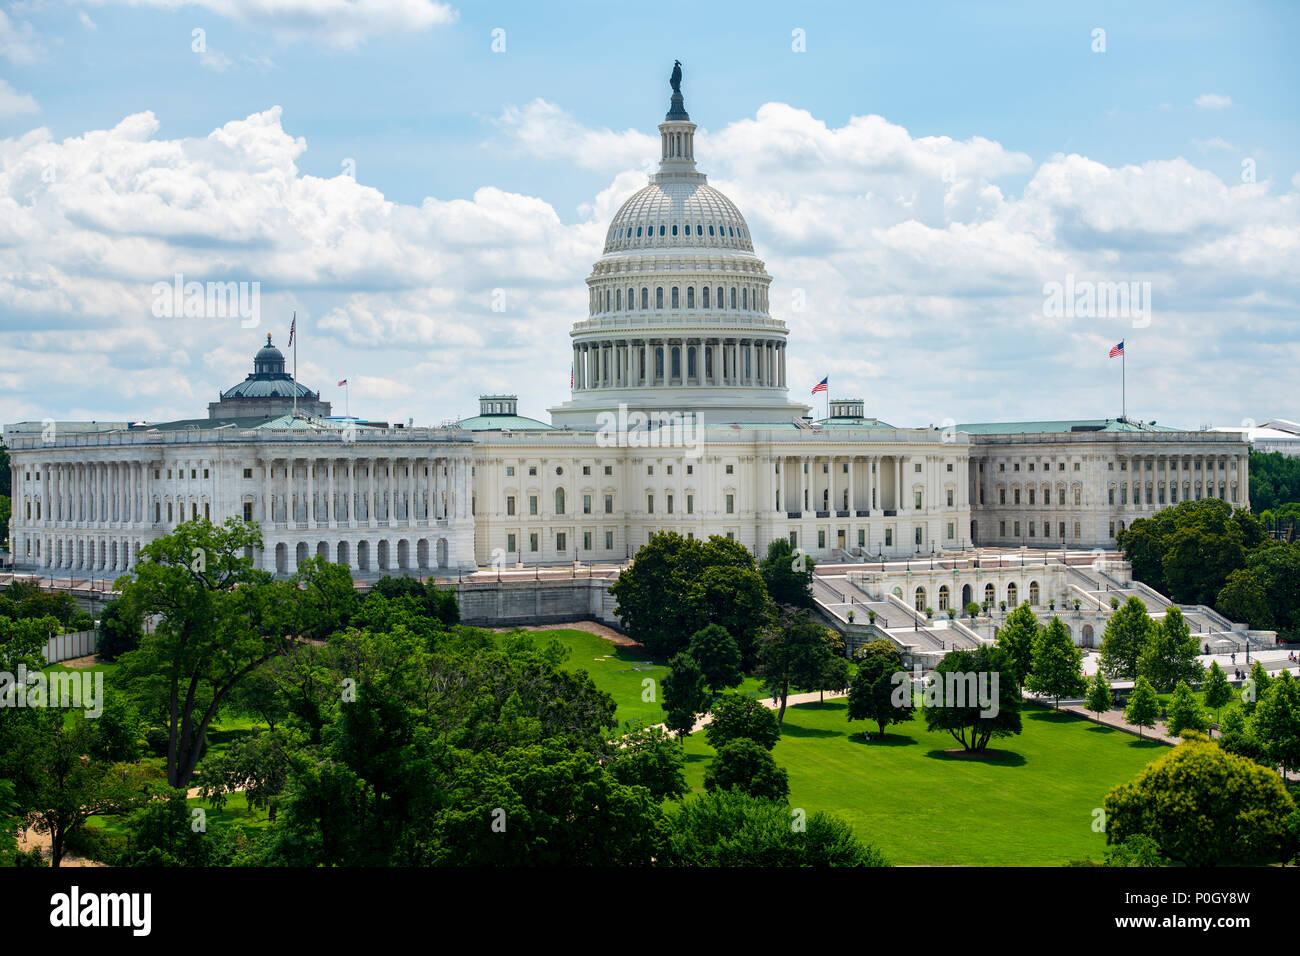 USA Wasington DC D.C. The U S Capitol Building on the hill on a sunny summer day. - Stock Image